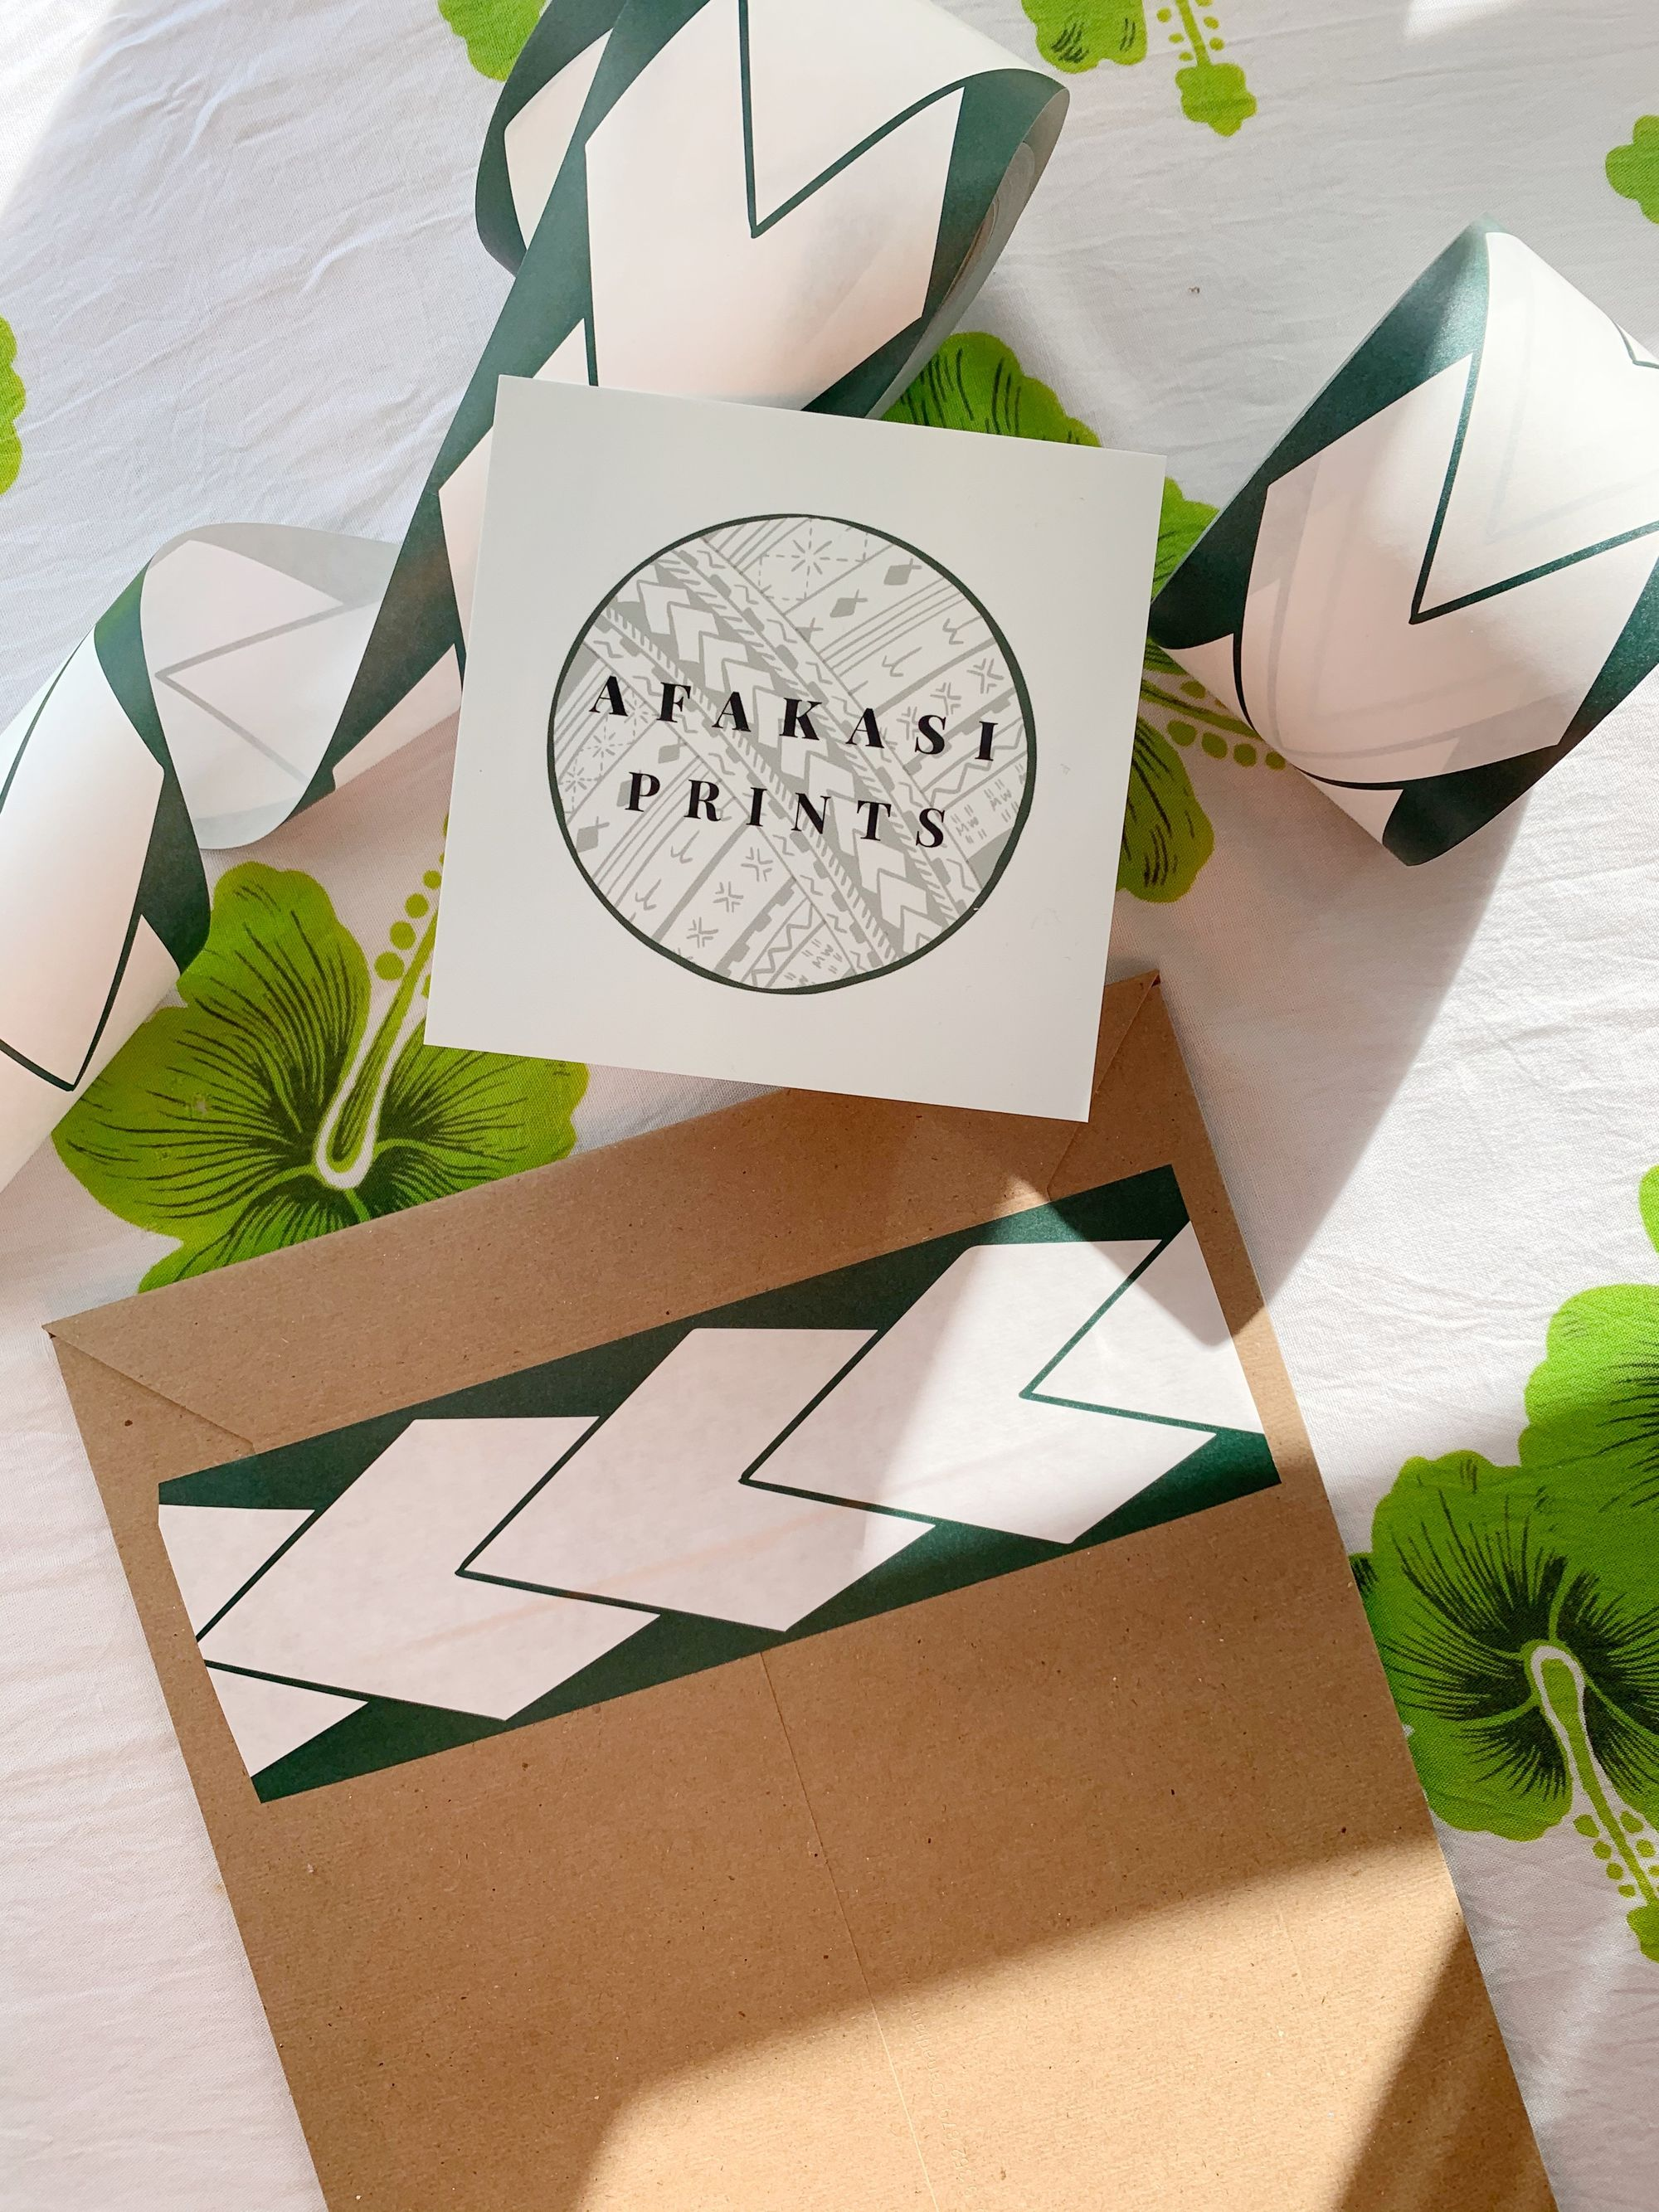 Afakasi Prints: Representing Sāmoan Culture and Making a Difference